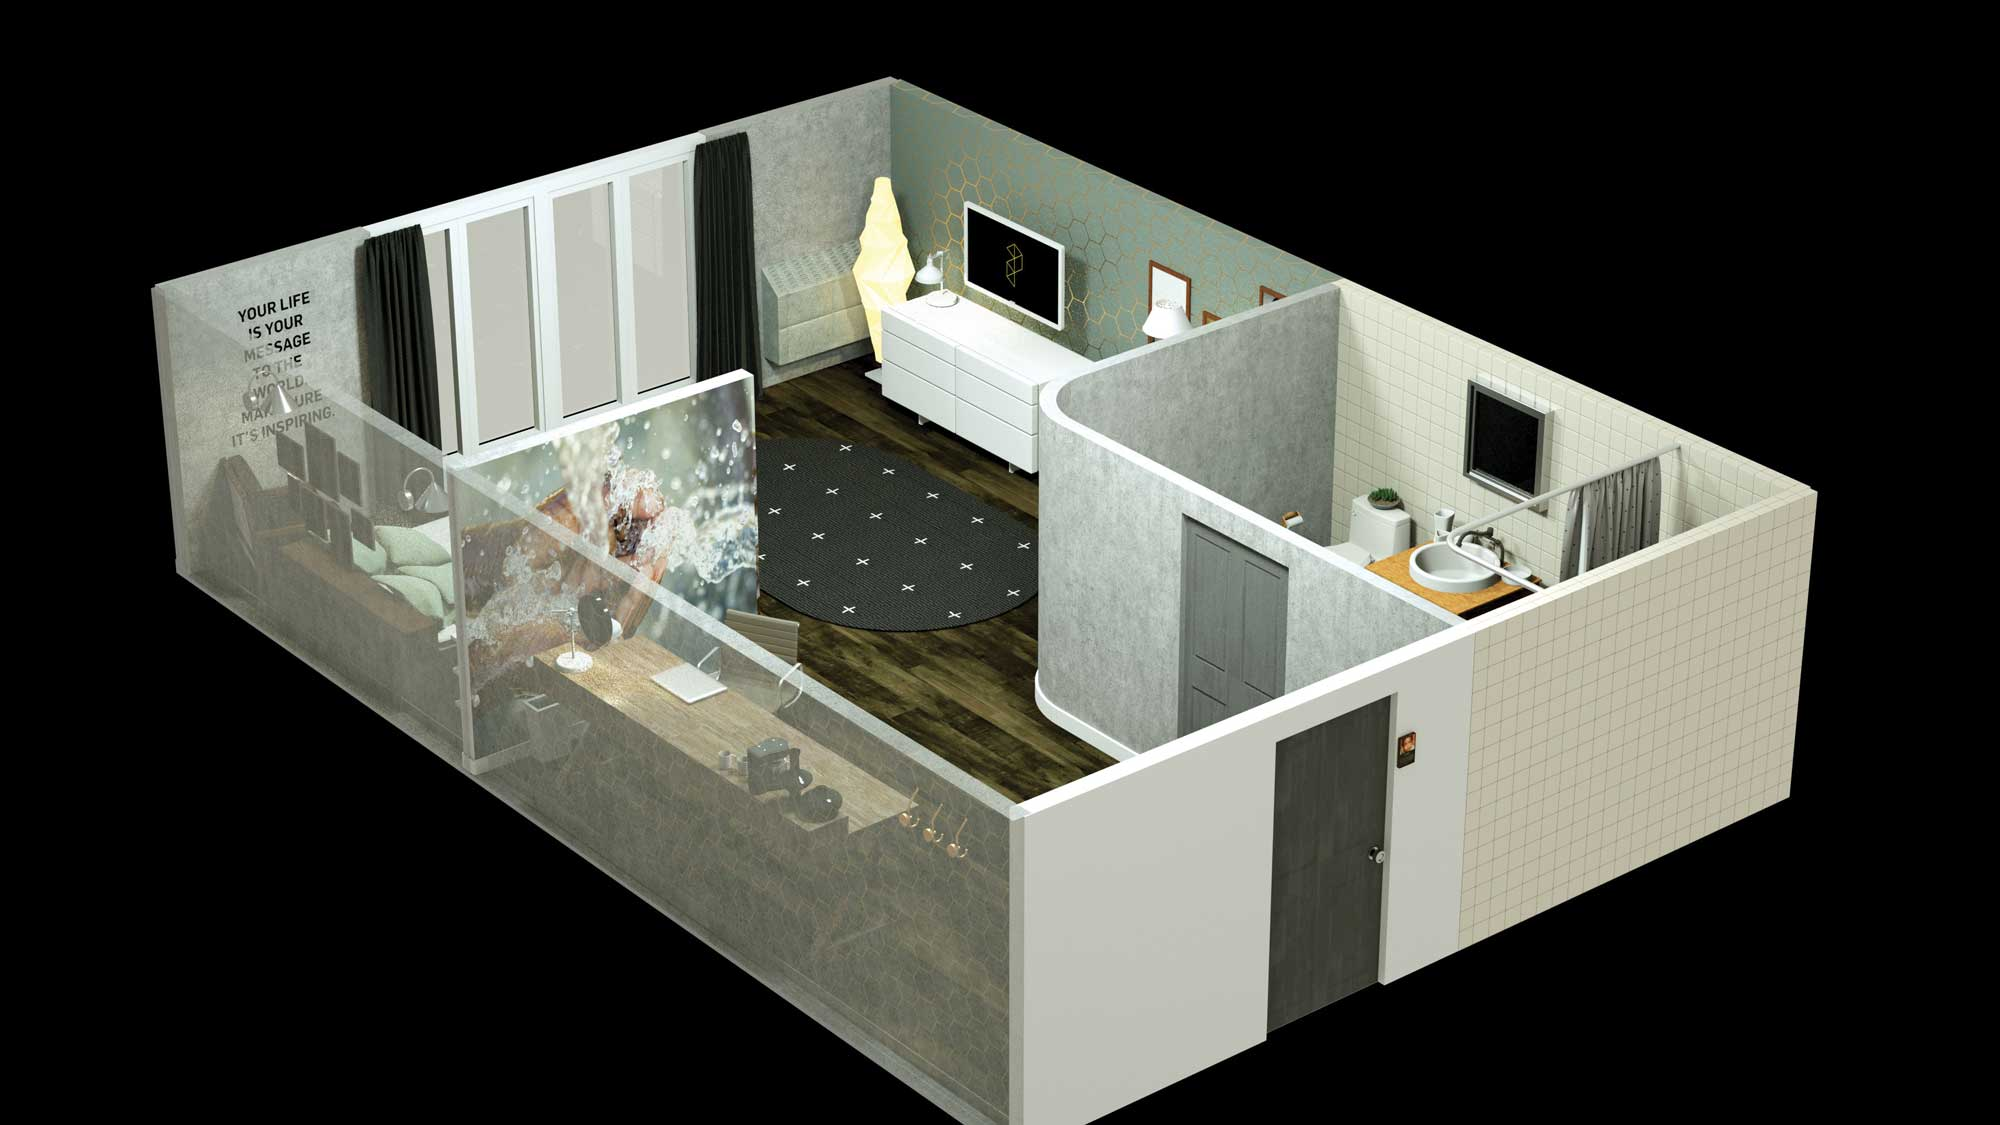 Rendering of a room in The Purpose Hotel.